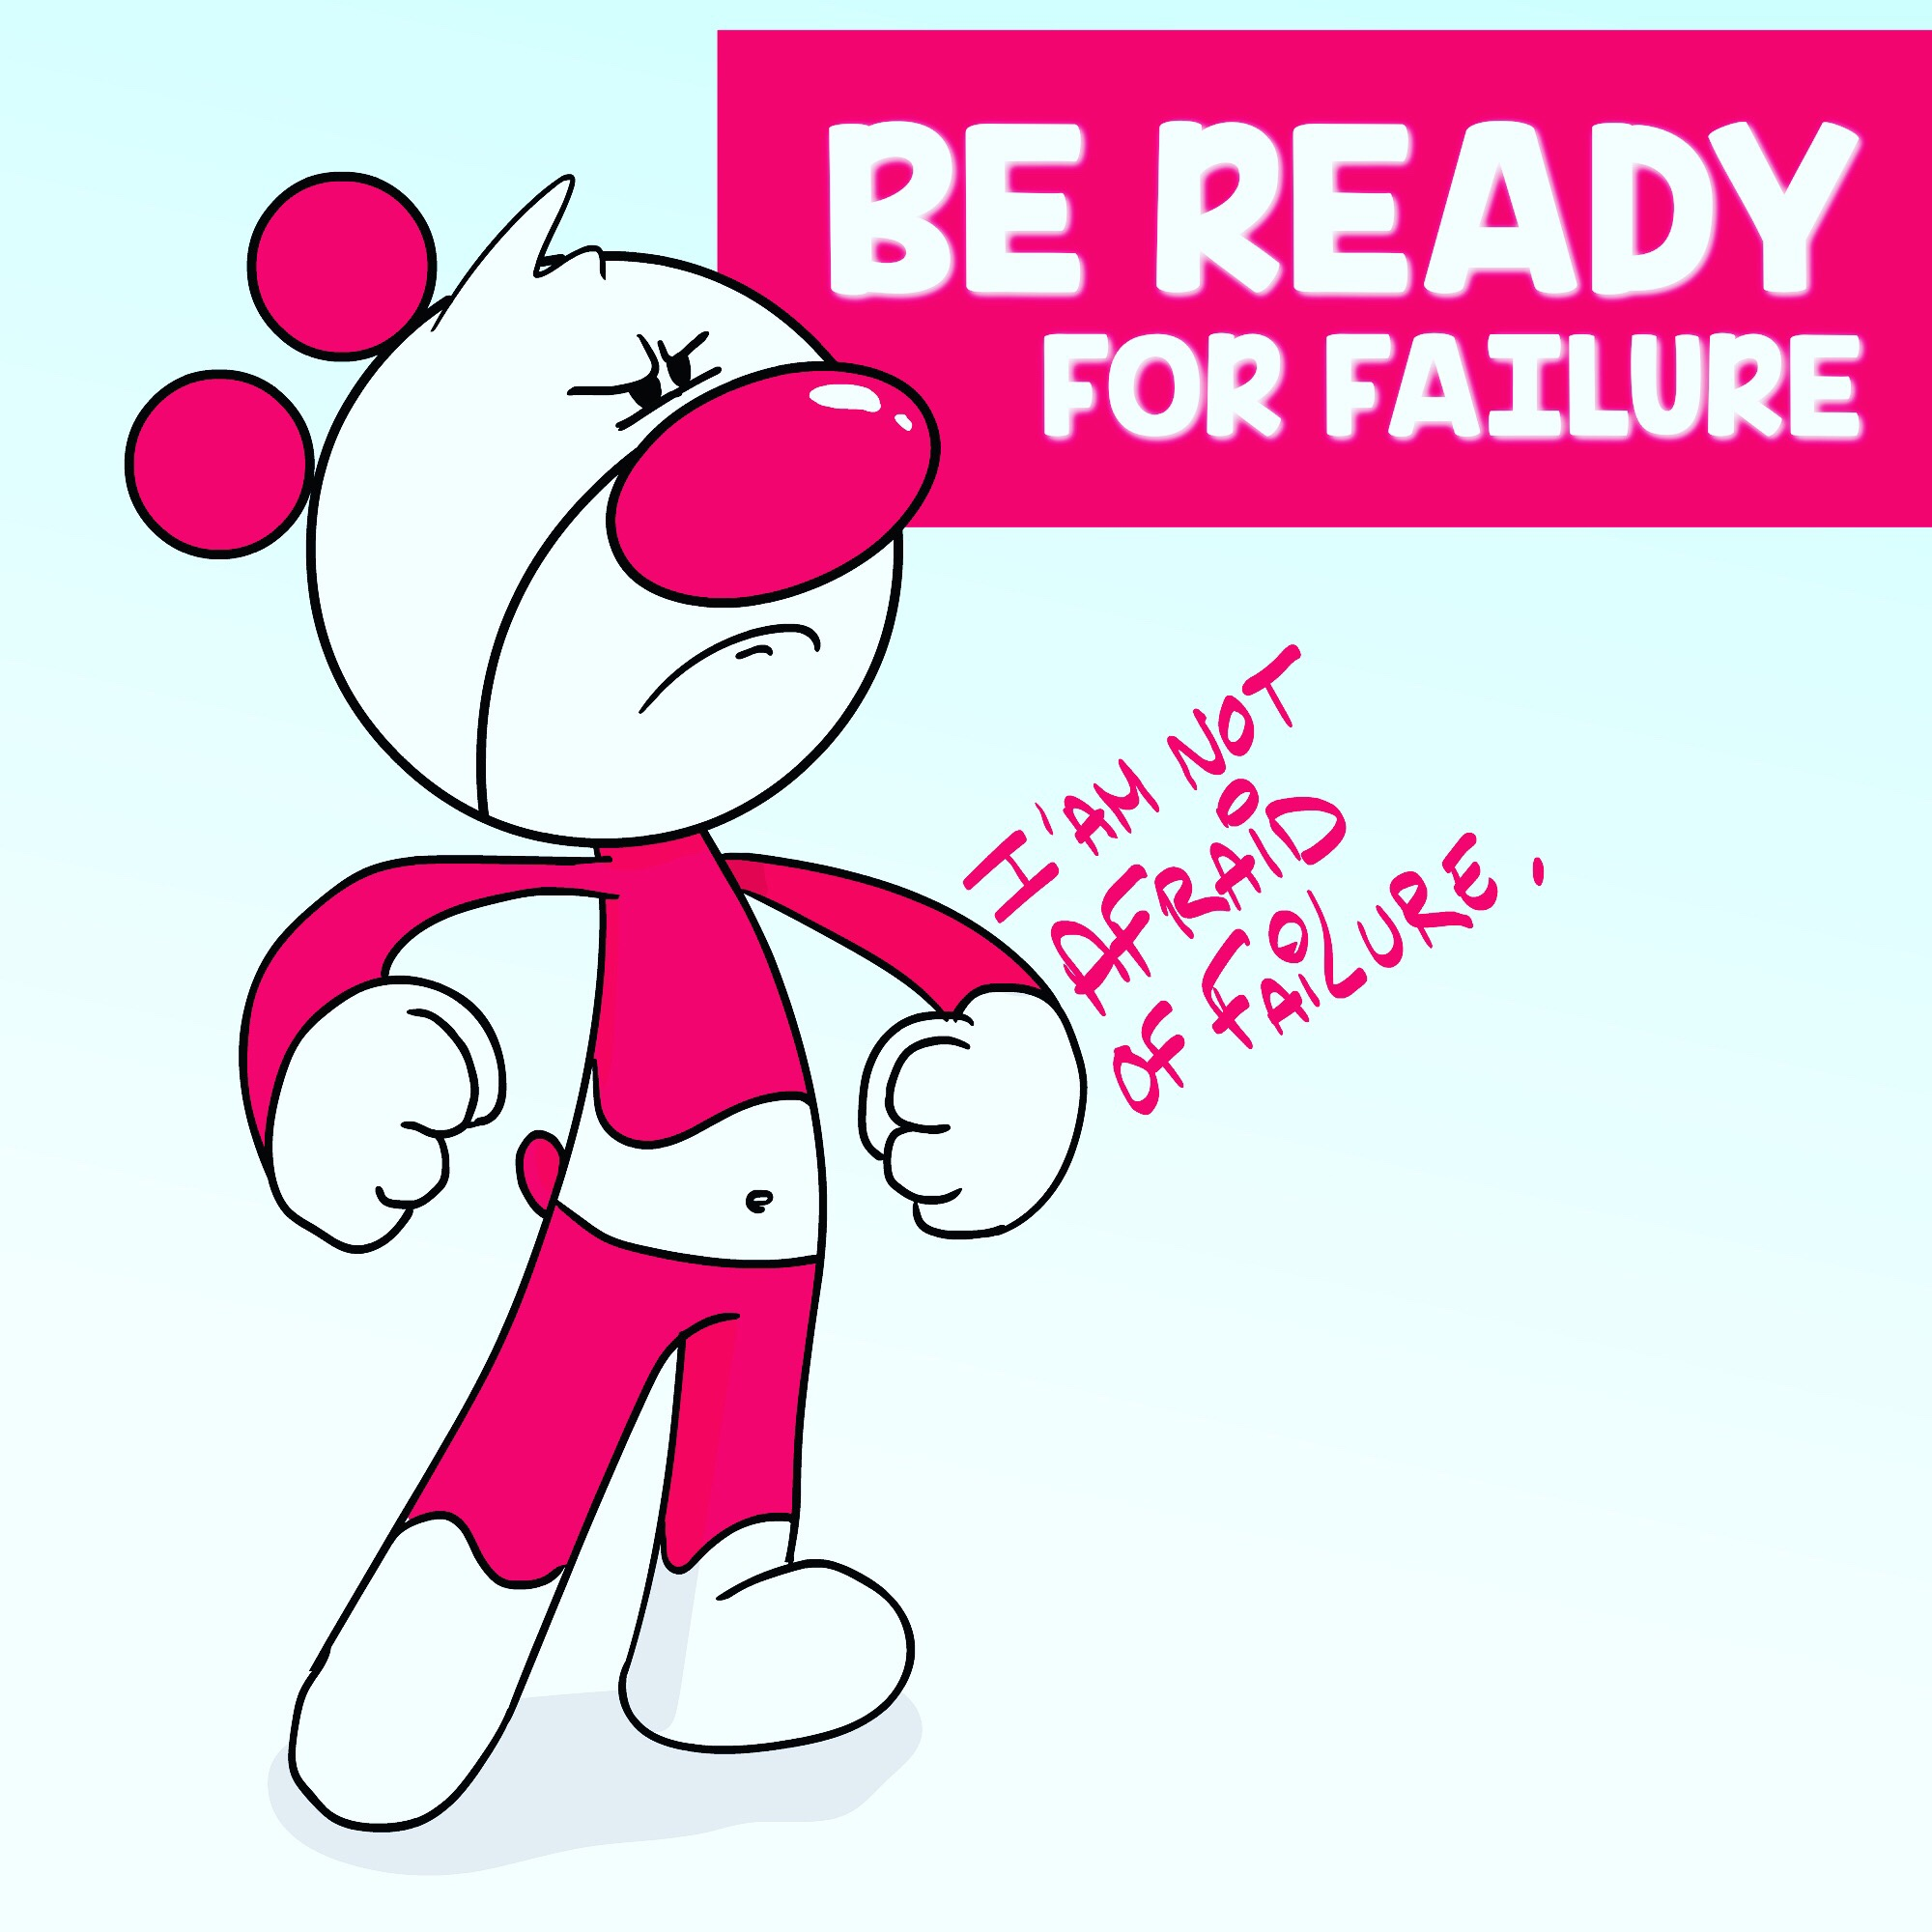 Piwooz is not afraid of failure! 💪